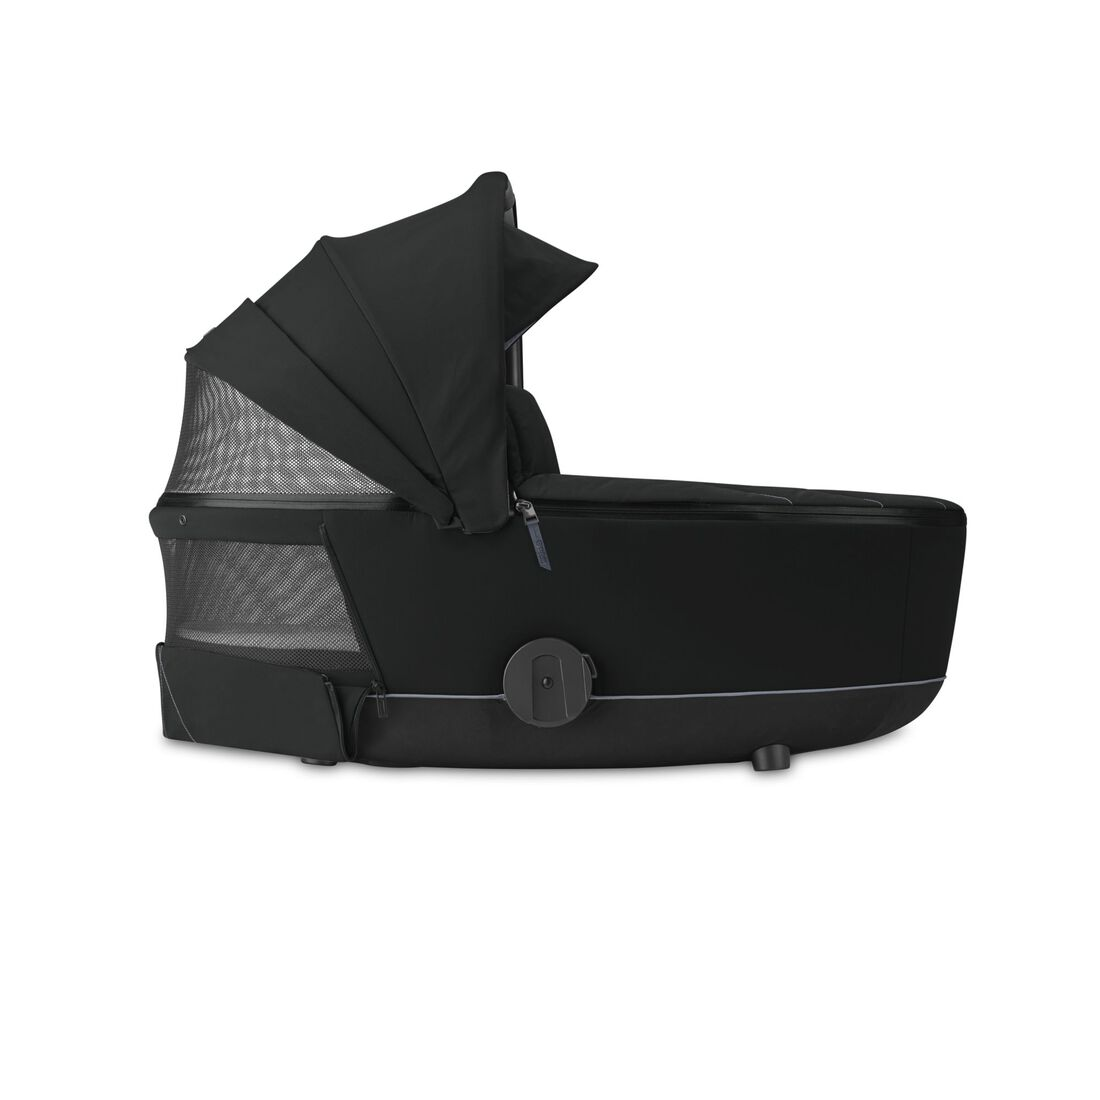 CYBEX Mios Lux Carry Cot - Deep Black in Deep Black large Bild 3